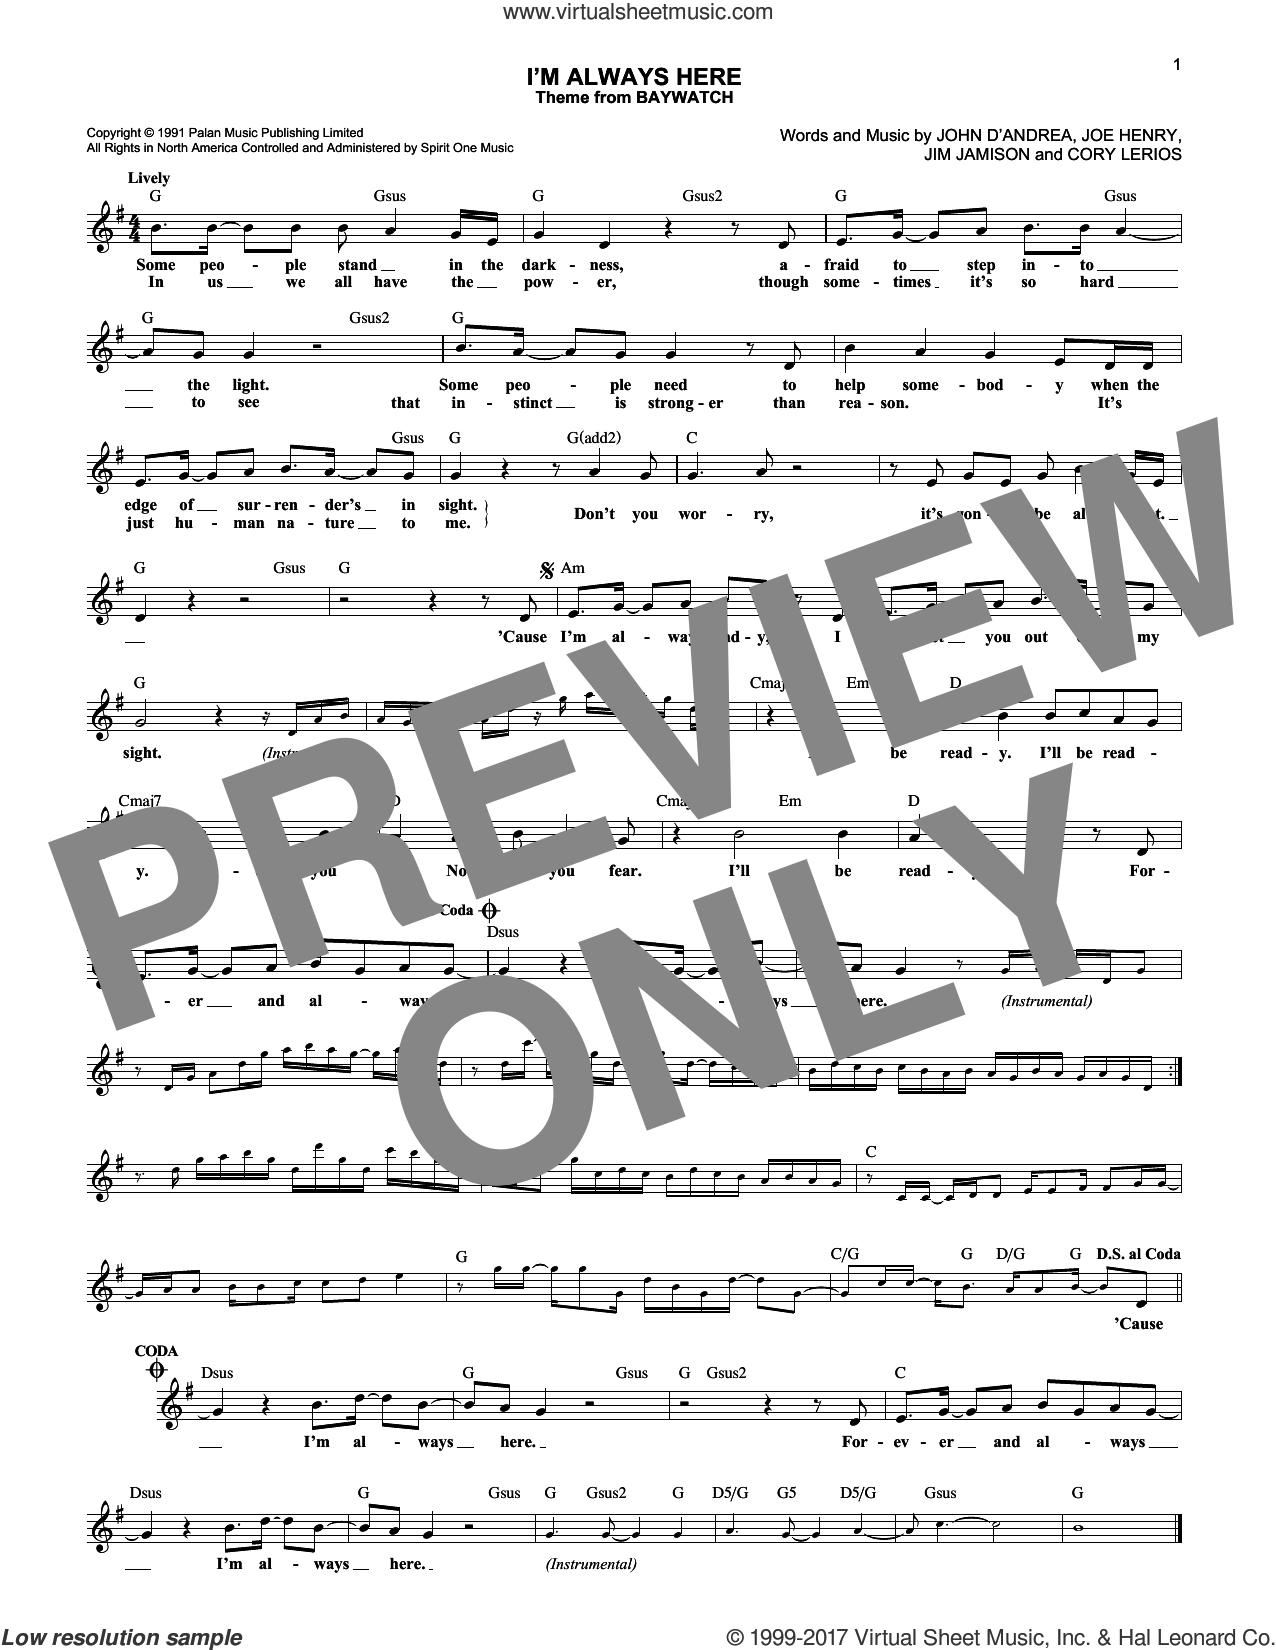 I'm Always Here sheet music for voice and other instruments (fake book) by John D'Andrea, Cory Lerios, Jim Jamison and Joe Henry, intermediate skill level